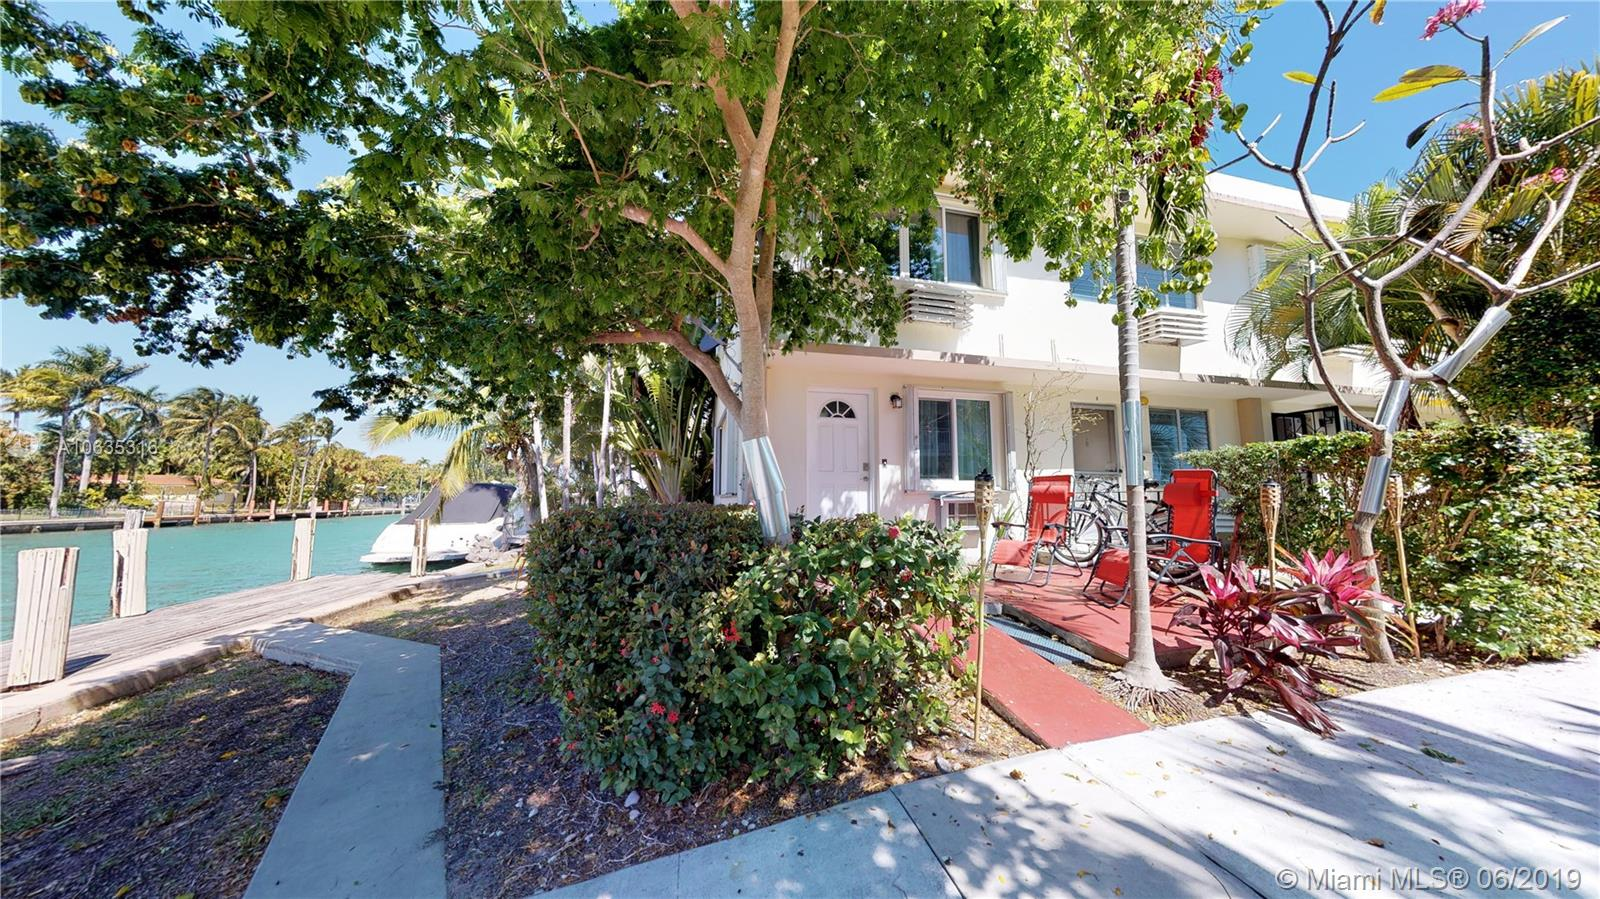 Renovated 2 Story Town home set up loft style with the bedroom upstairs and bathroom and the living space and kitchen downstairs with the guest bathroom. Enjoy your semi private front patio with water views. The location is supreme with walking distance to the stores, restaurants, and beach. This is freshly painted with updated kitchen and bathrooms and a brand new wall/ window AC unit upstairs. Bring your paddle board and jump in and enjoy this charming town home on the canal. TENANT OCCUPIED UNTIL JULY 19, 2020. 48 HR NOTICE REQUIRED TO SHOW.